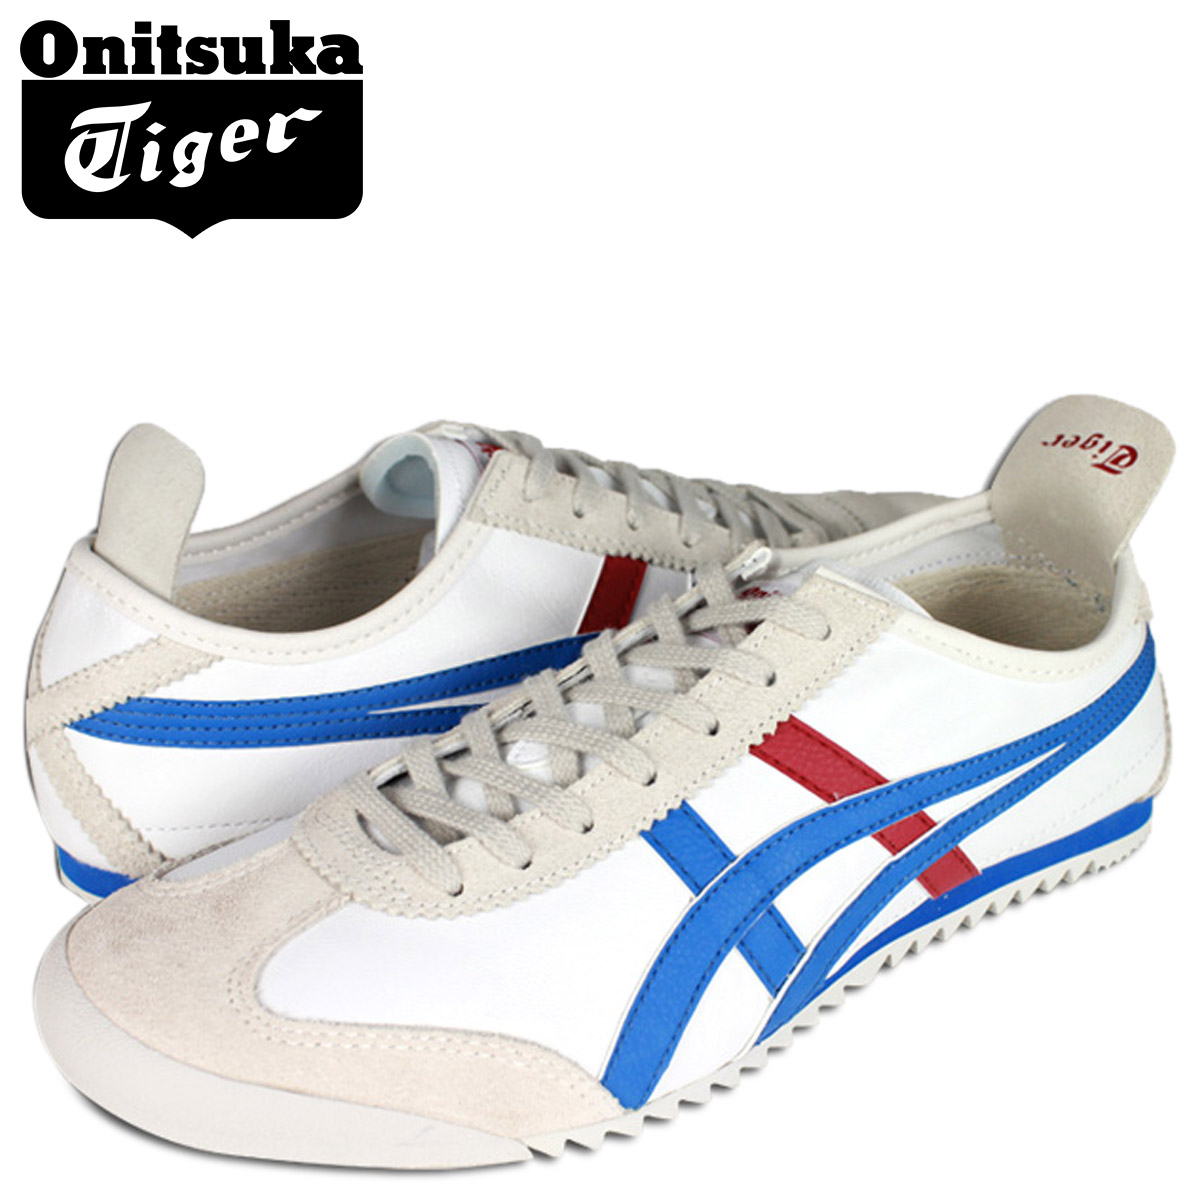 huge selection of 4be73 26156 Onitsuka tiger Onitsuka Tiger sneakers white royal blue D012L-0143 MEXIC 66  DX LE men